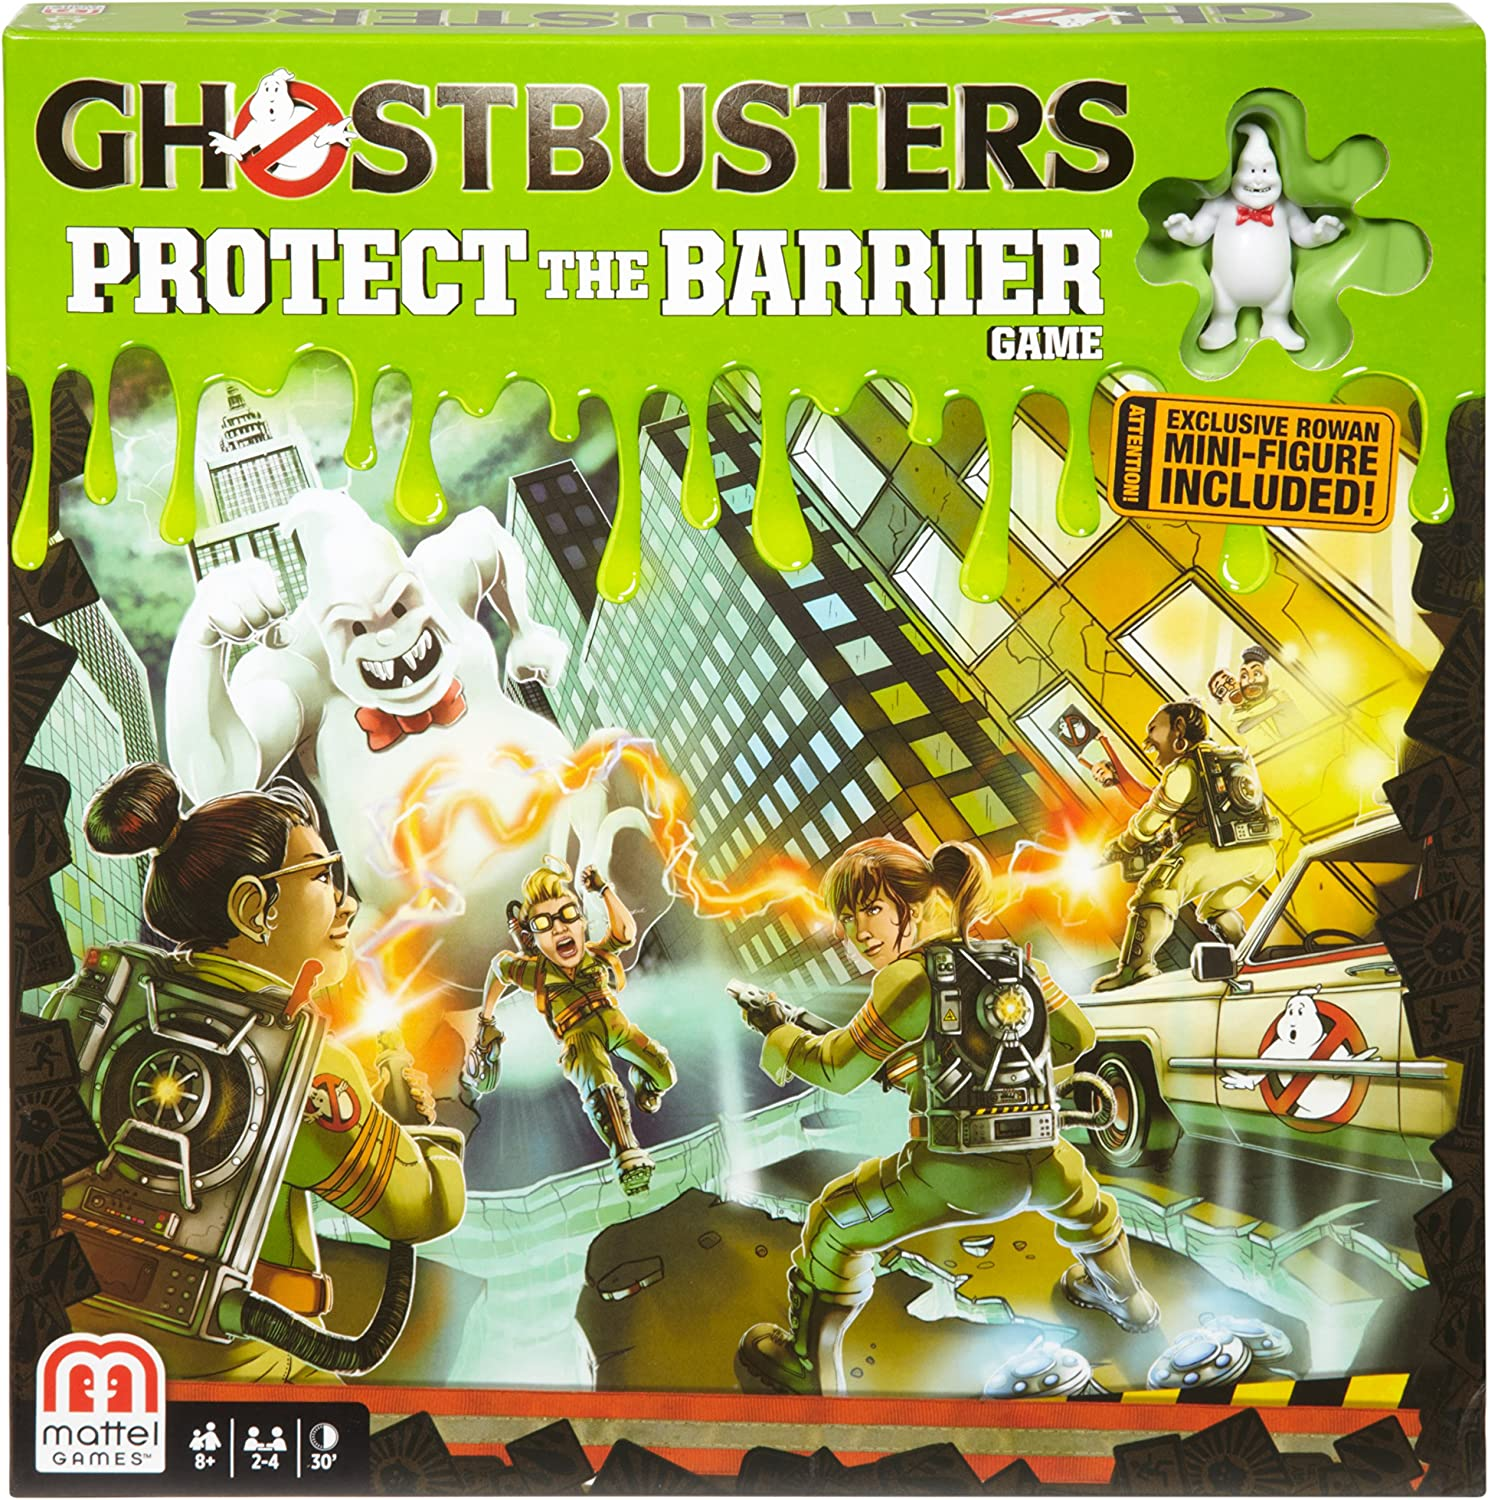 Ghostbusters Protect the Barrier Game by Mattel: Amazon.es: Juguetes y juegos